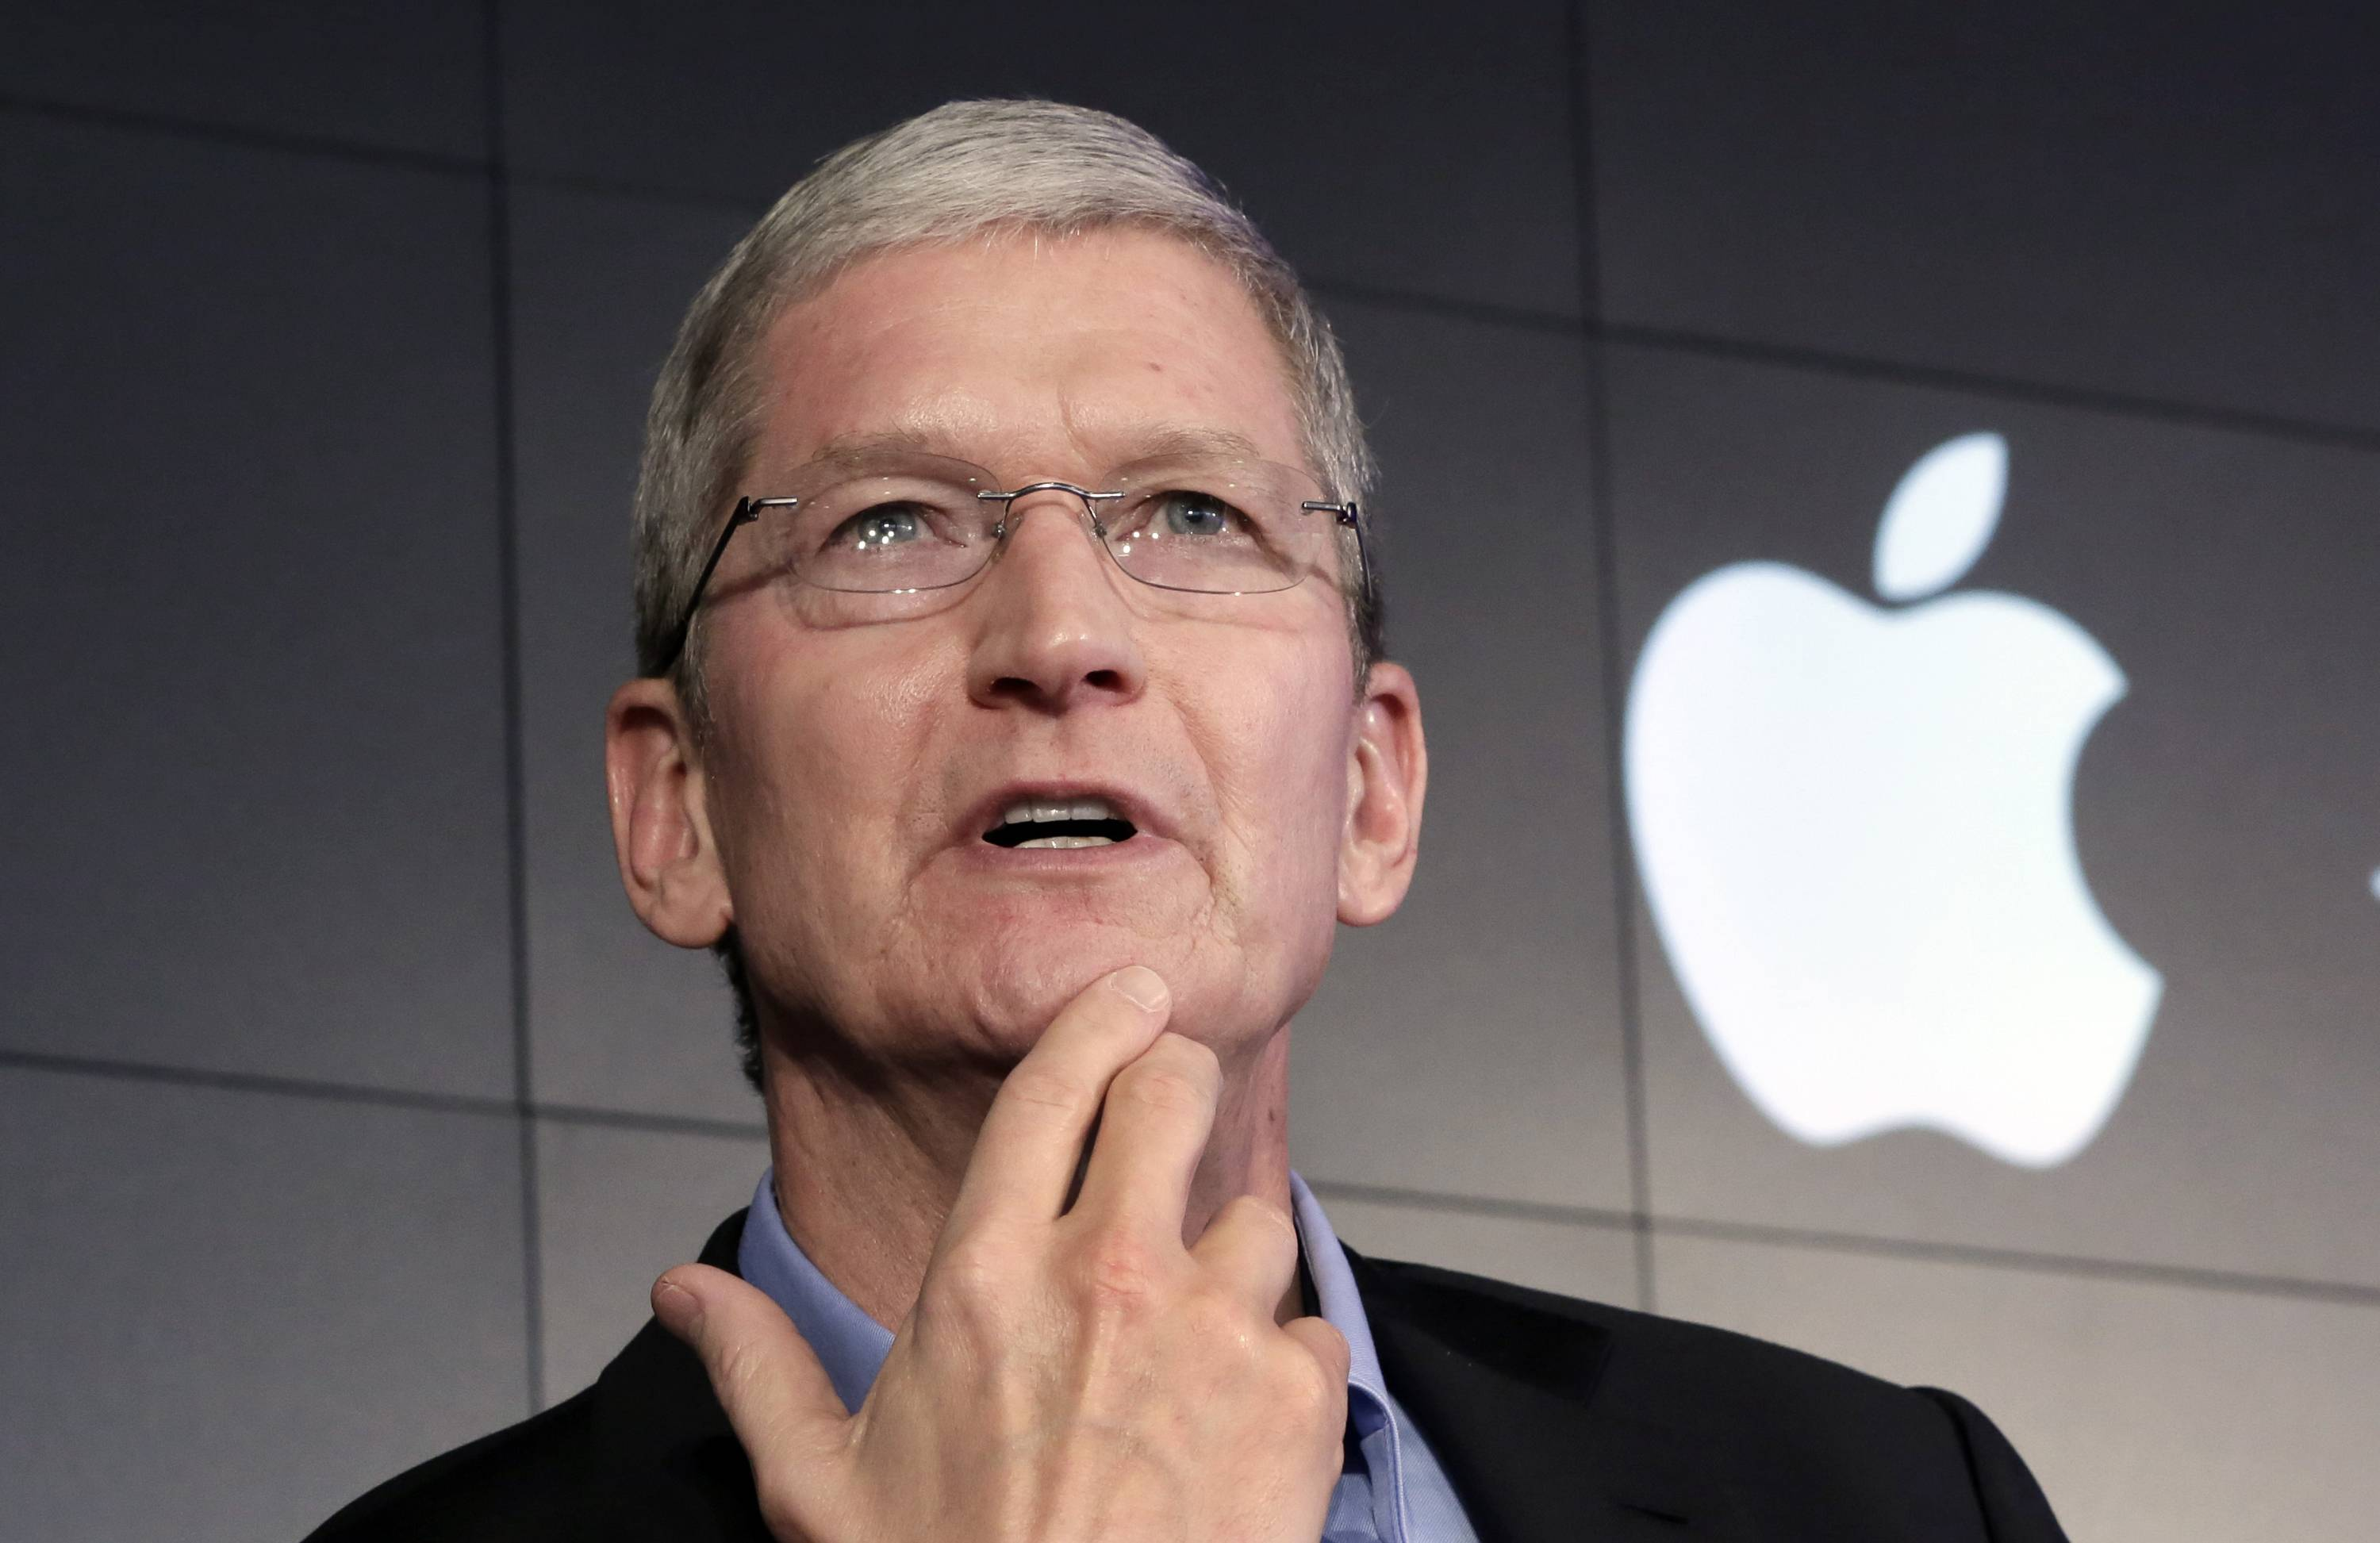 Apple CEO Tim Cook. Apple has broken its silence on net neutrality with a filing at the Federal Communications Commission, urging regulators to avoid repealing large swaths of the regulations that are aimed at constraining Internet providers.